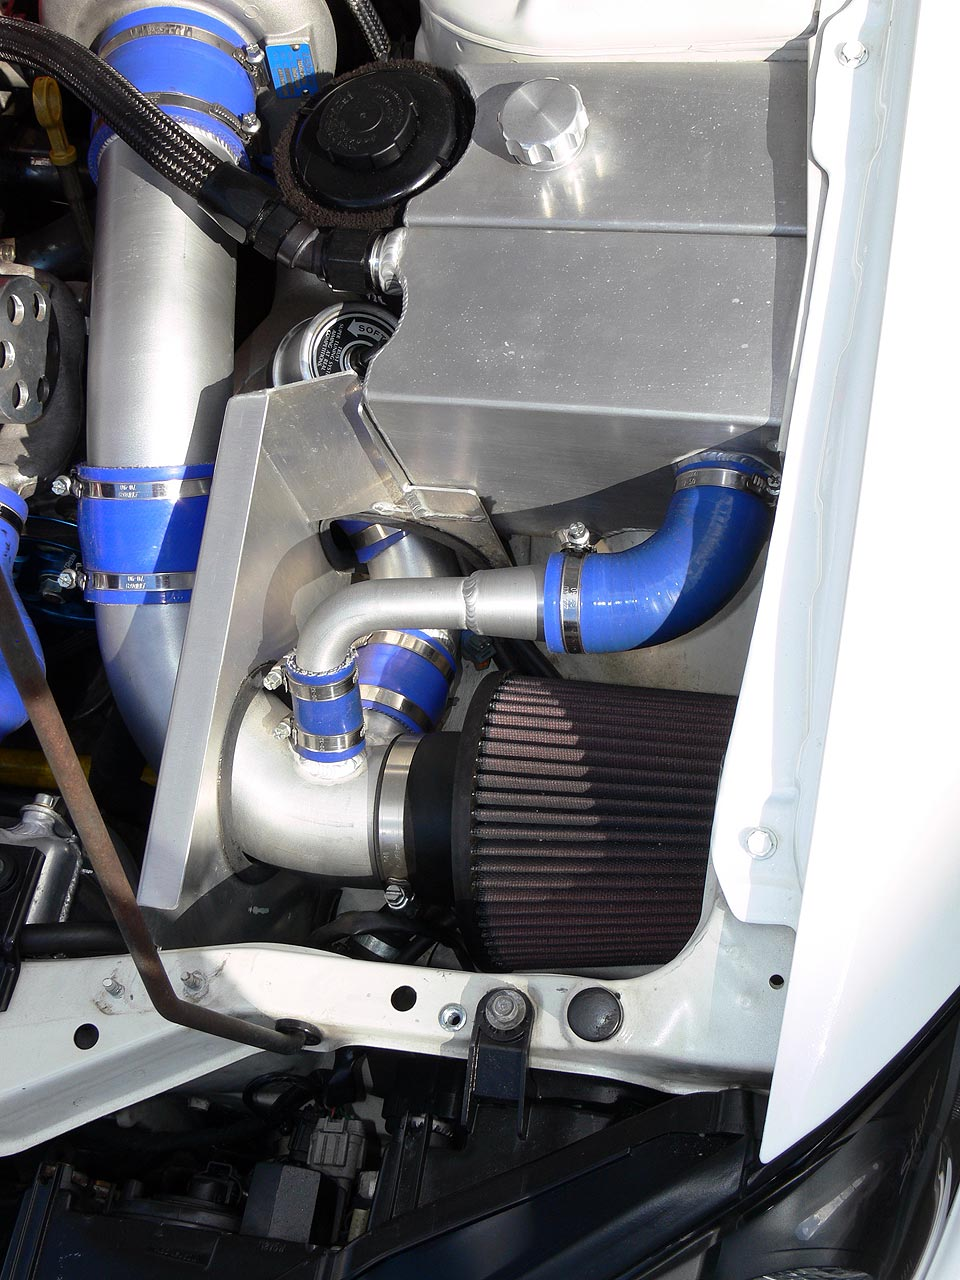 Close up of Nissan S15 Silvia/200SX Engine Bay with Greddy Type-R Blow-off Valve and Cold Air Intake